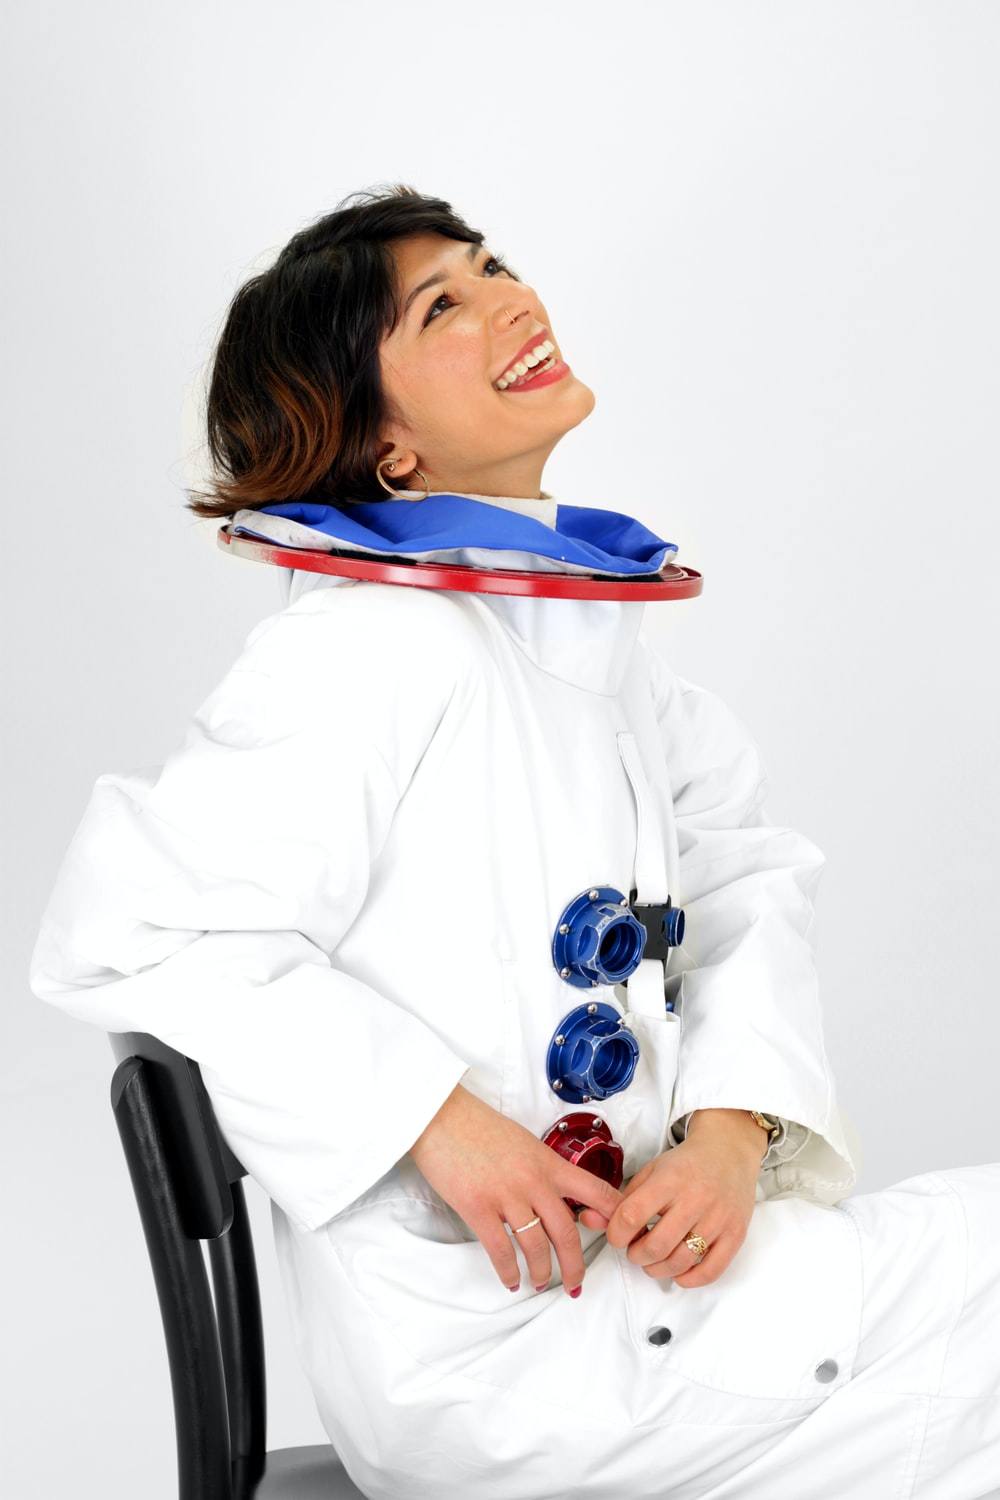 woman wearing astronaut suit smiling while sitting on chair and looking up